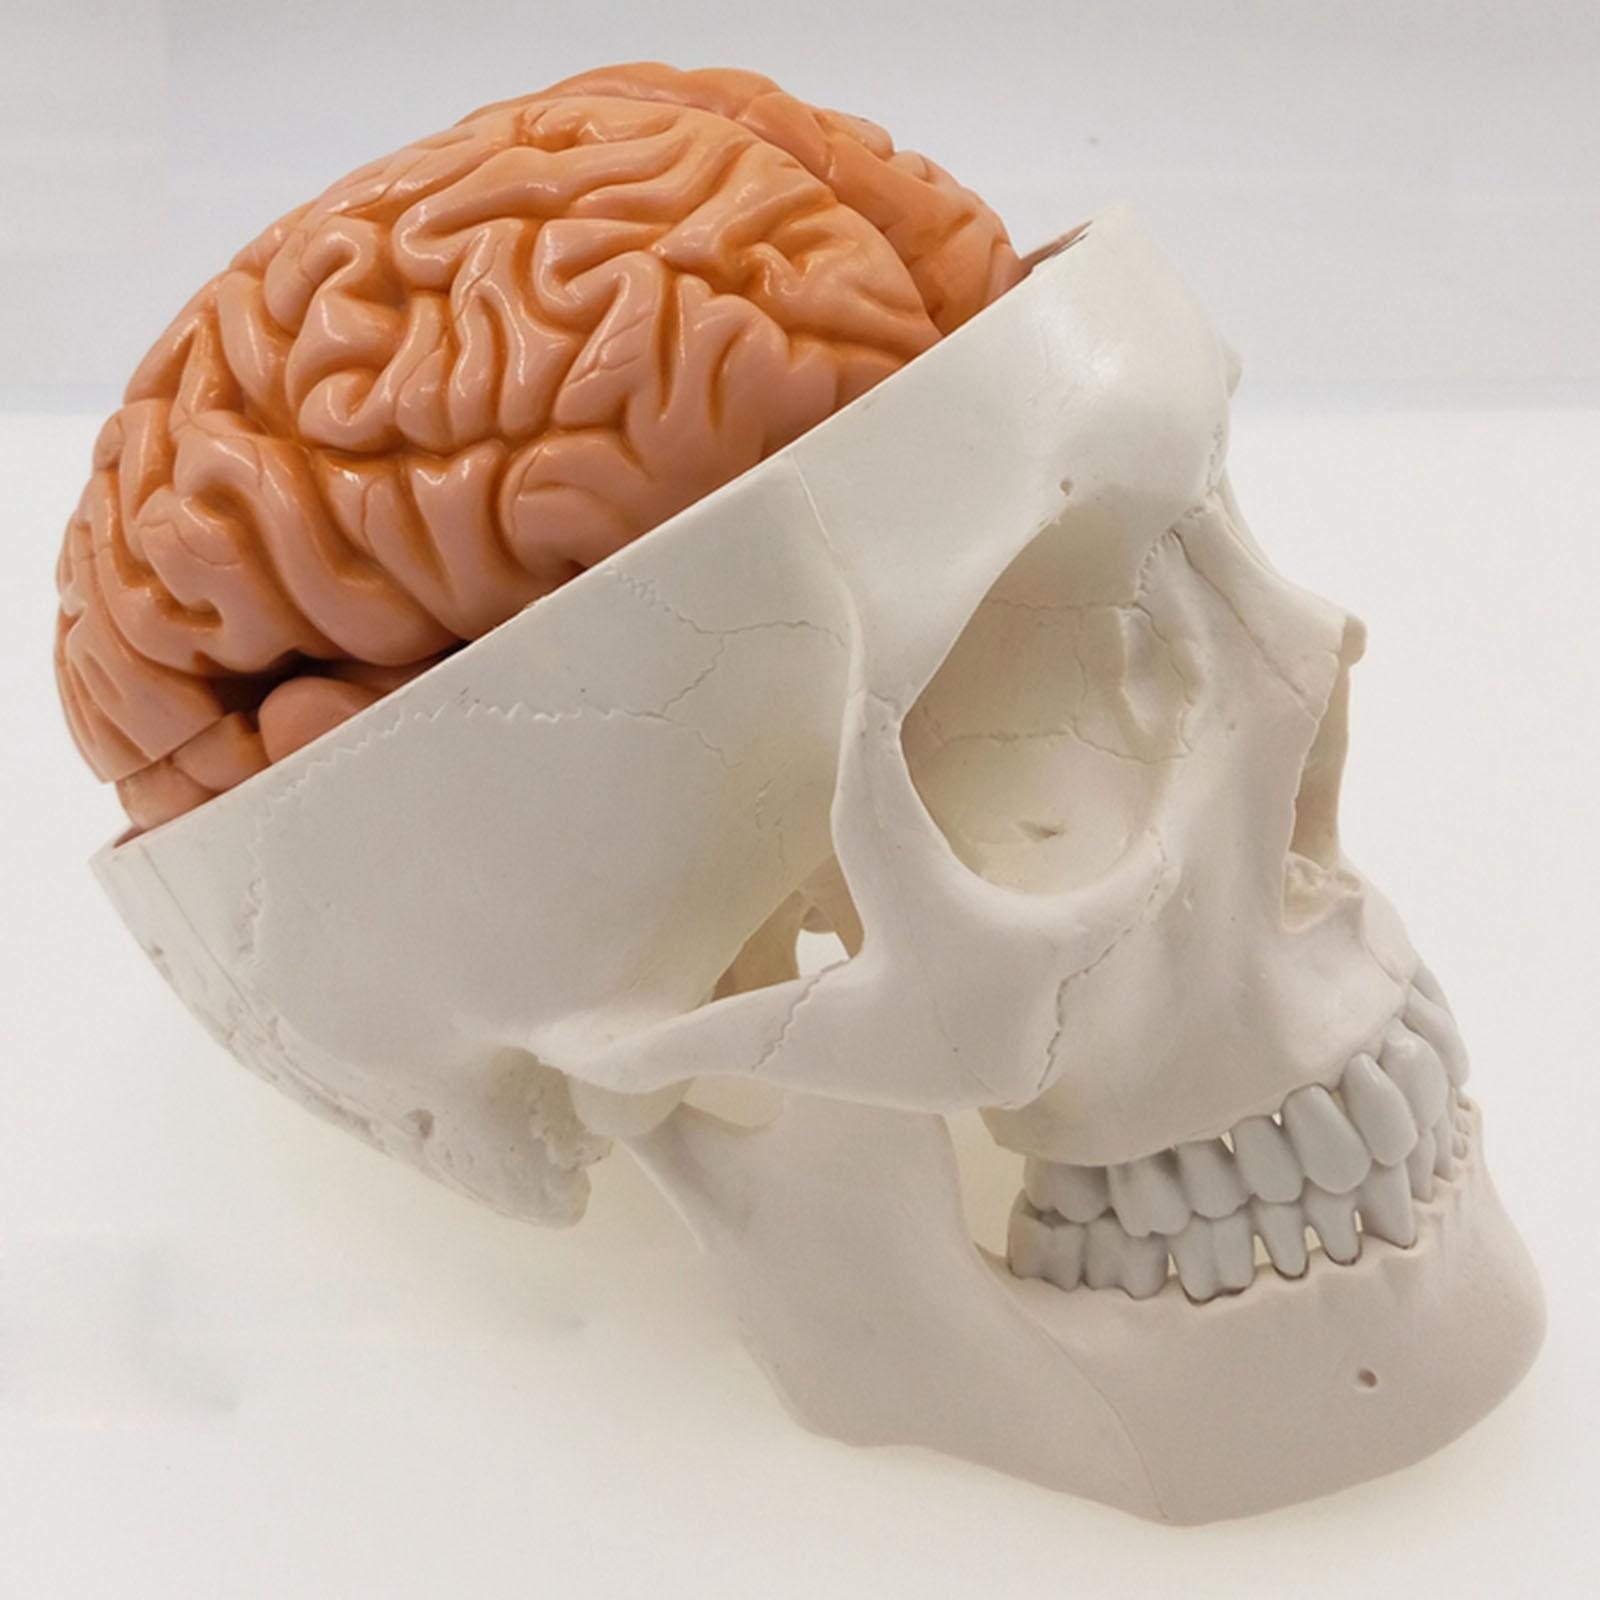 Life Size Human Skull 3 Parts With Brain 8 Parts Numbered Model for Medical Study Teaching Resources